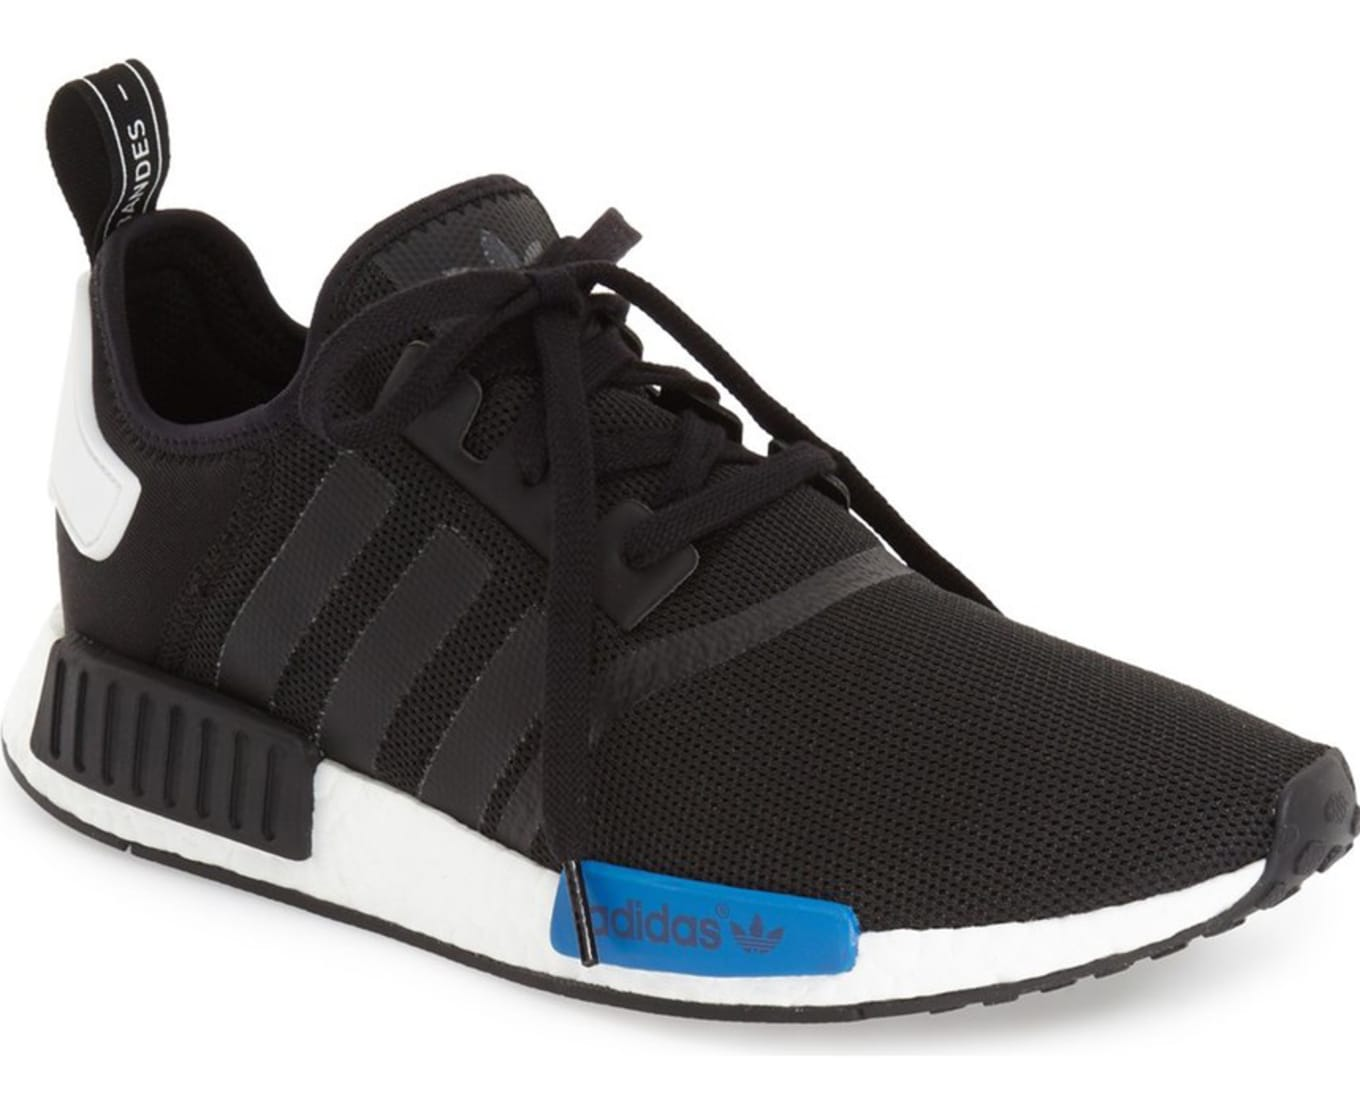 separation shoes 96276 5c526 Another Adidas NMD Restock